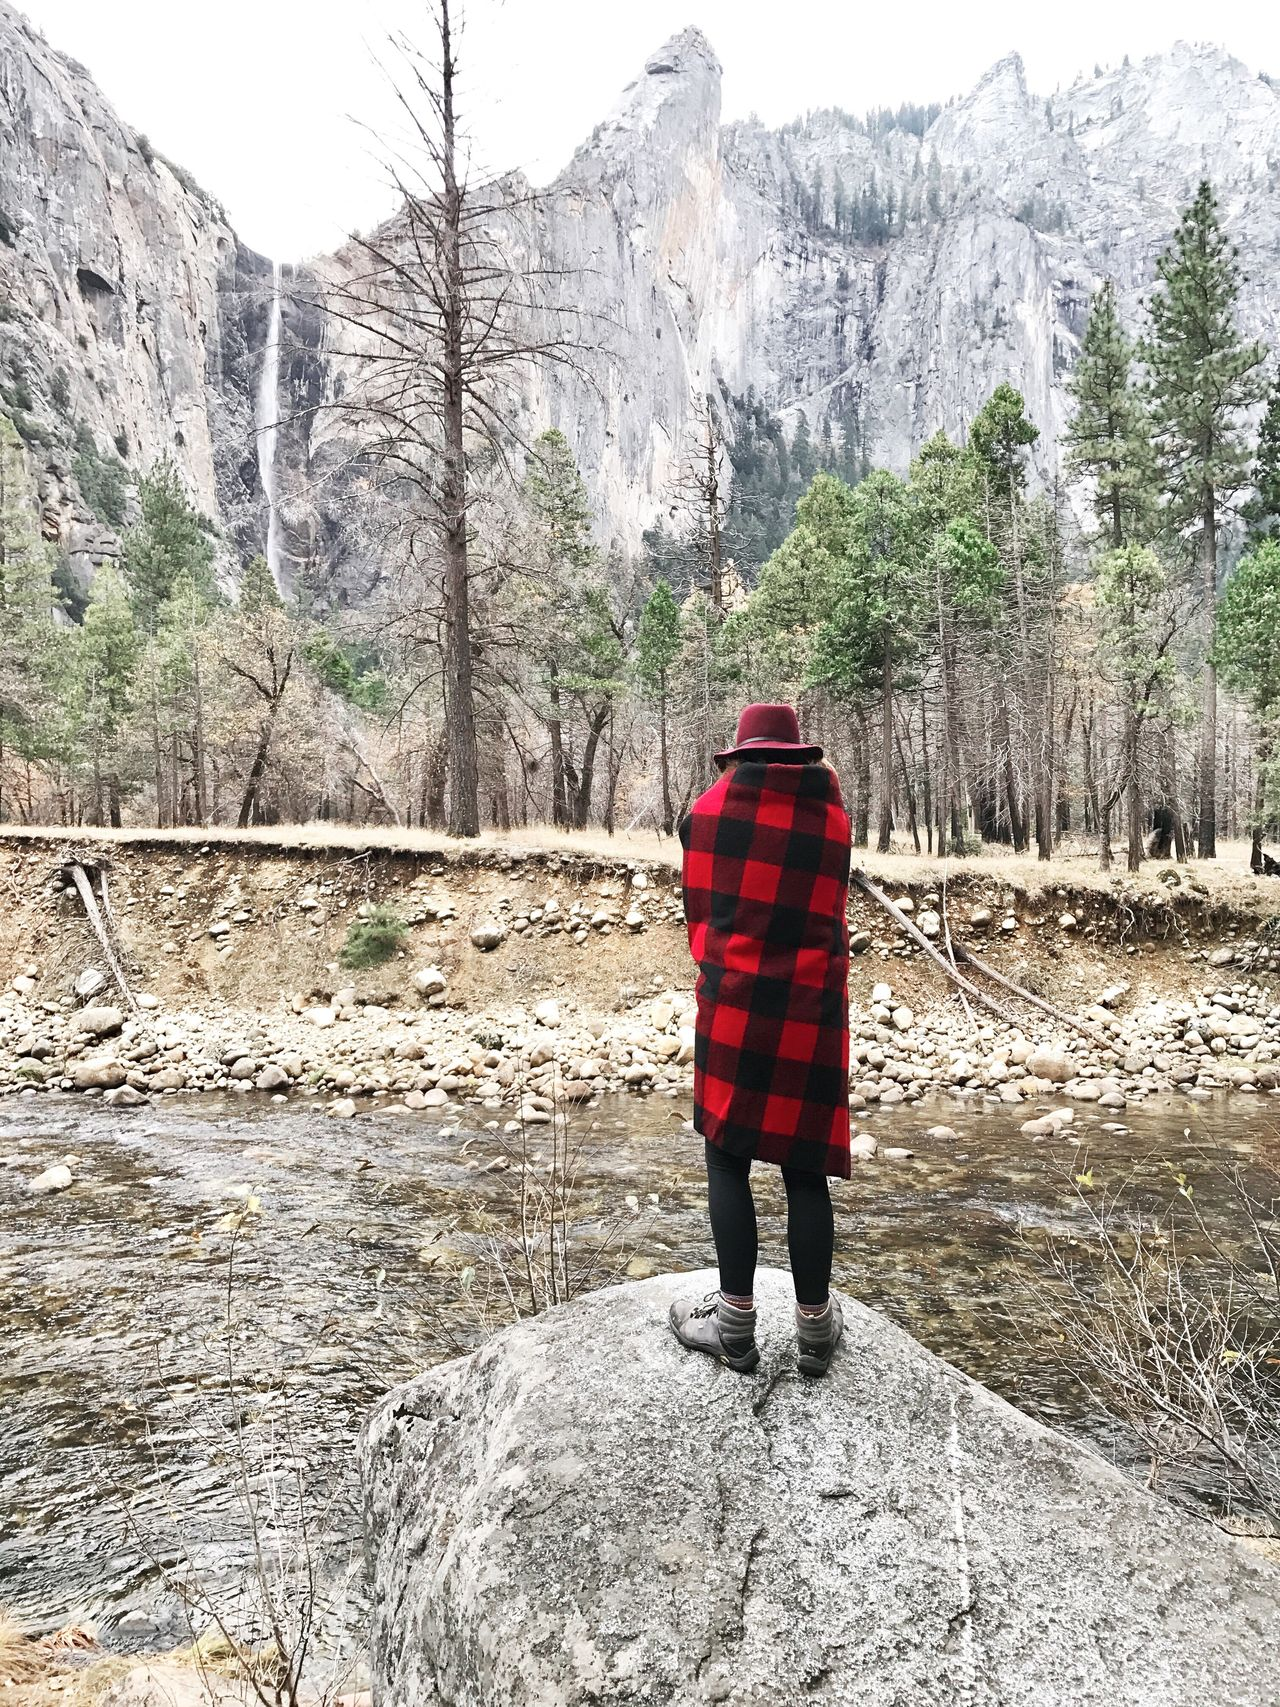 Rear View Full Length Mountain Cold Temperature Winter Rock - Object Hiking Nature Red Warm Clothing Snow One Person Outdoors Real People Tree Standing Day Beauty In Nature Adventure Landscape Always Be Cozy